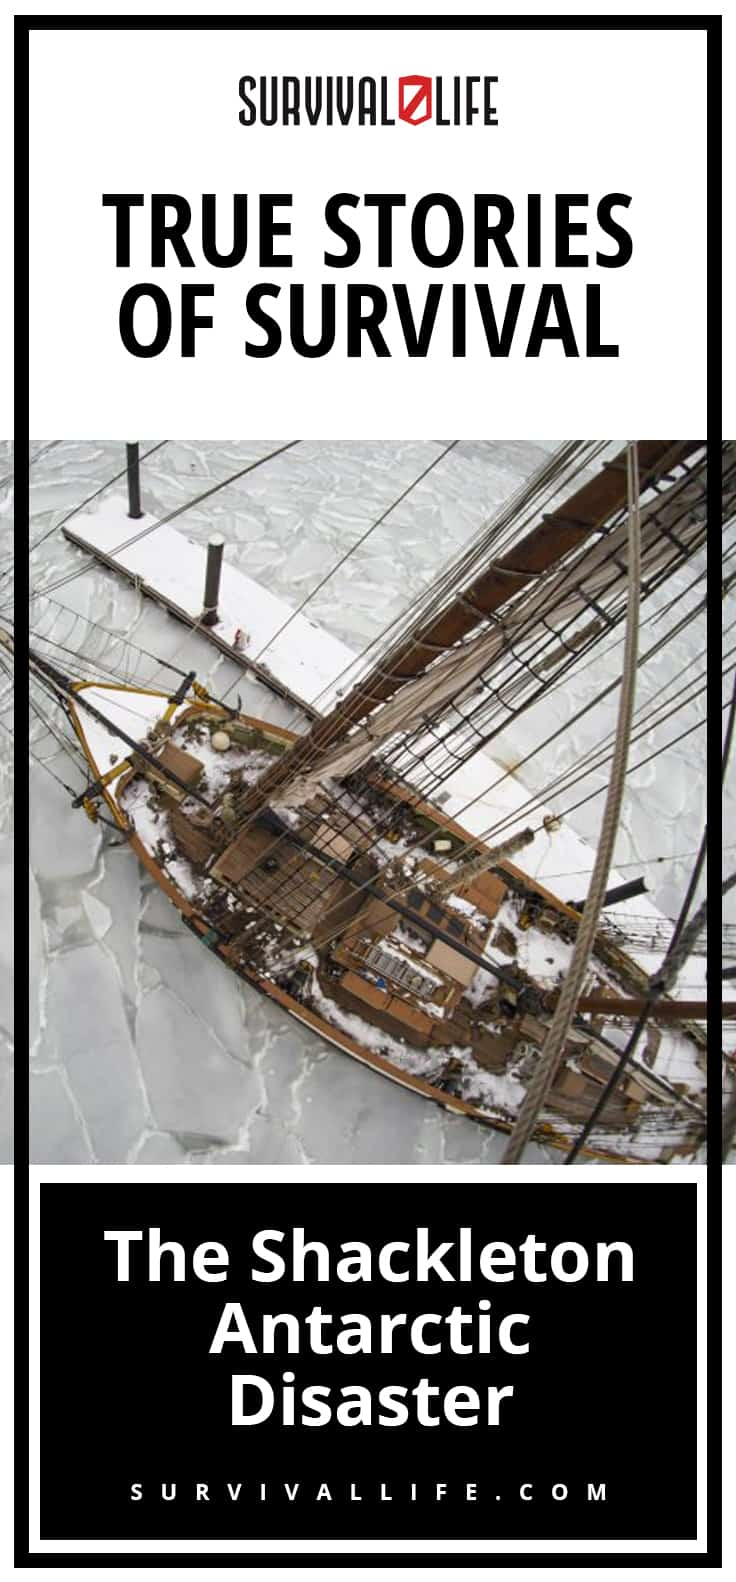 True Stories Of Survival: The Shackleton Antarctic Disaster